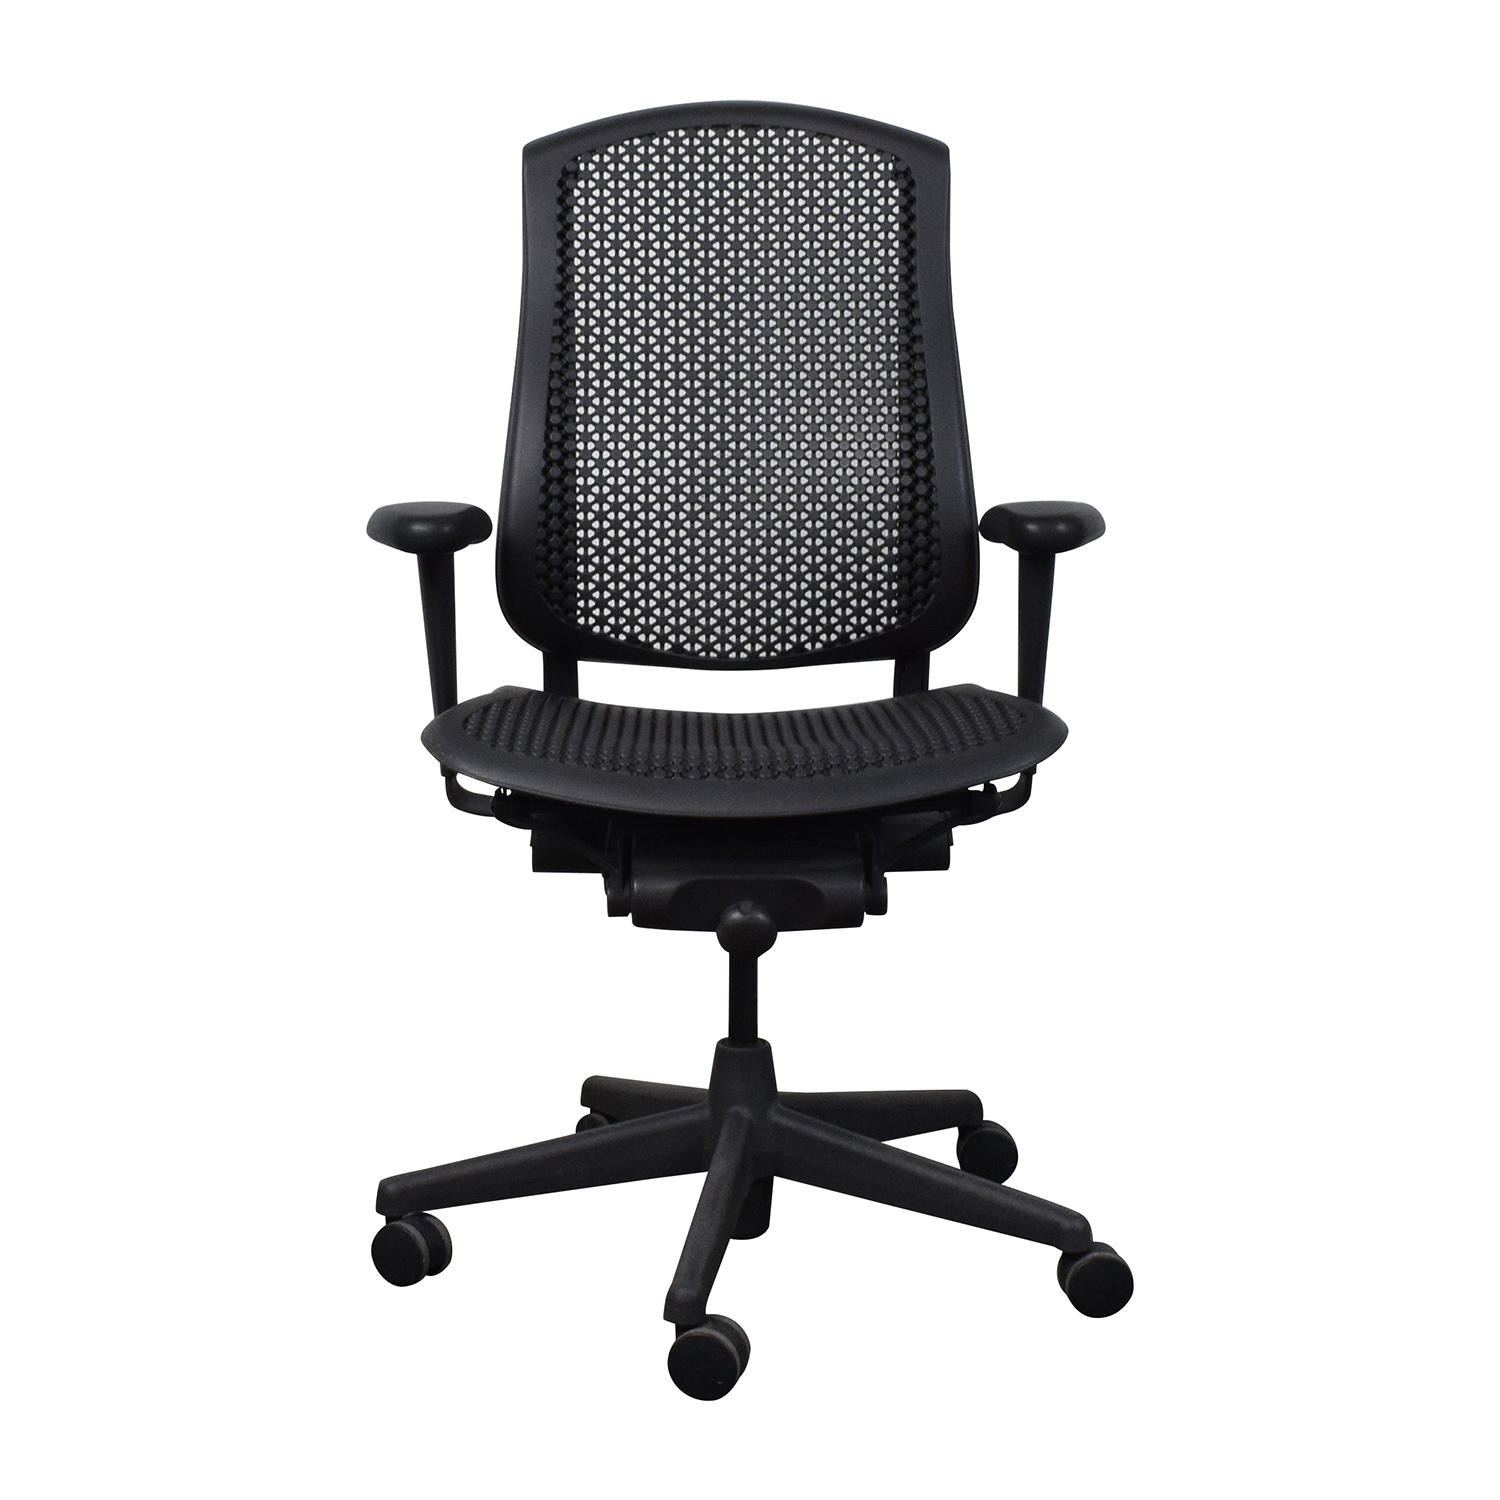 Herman Miller Herman Miller Celle Office Chair coupon